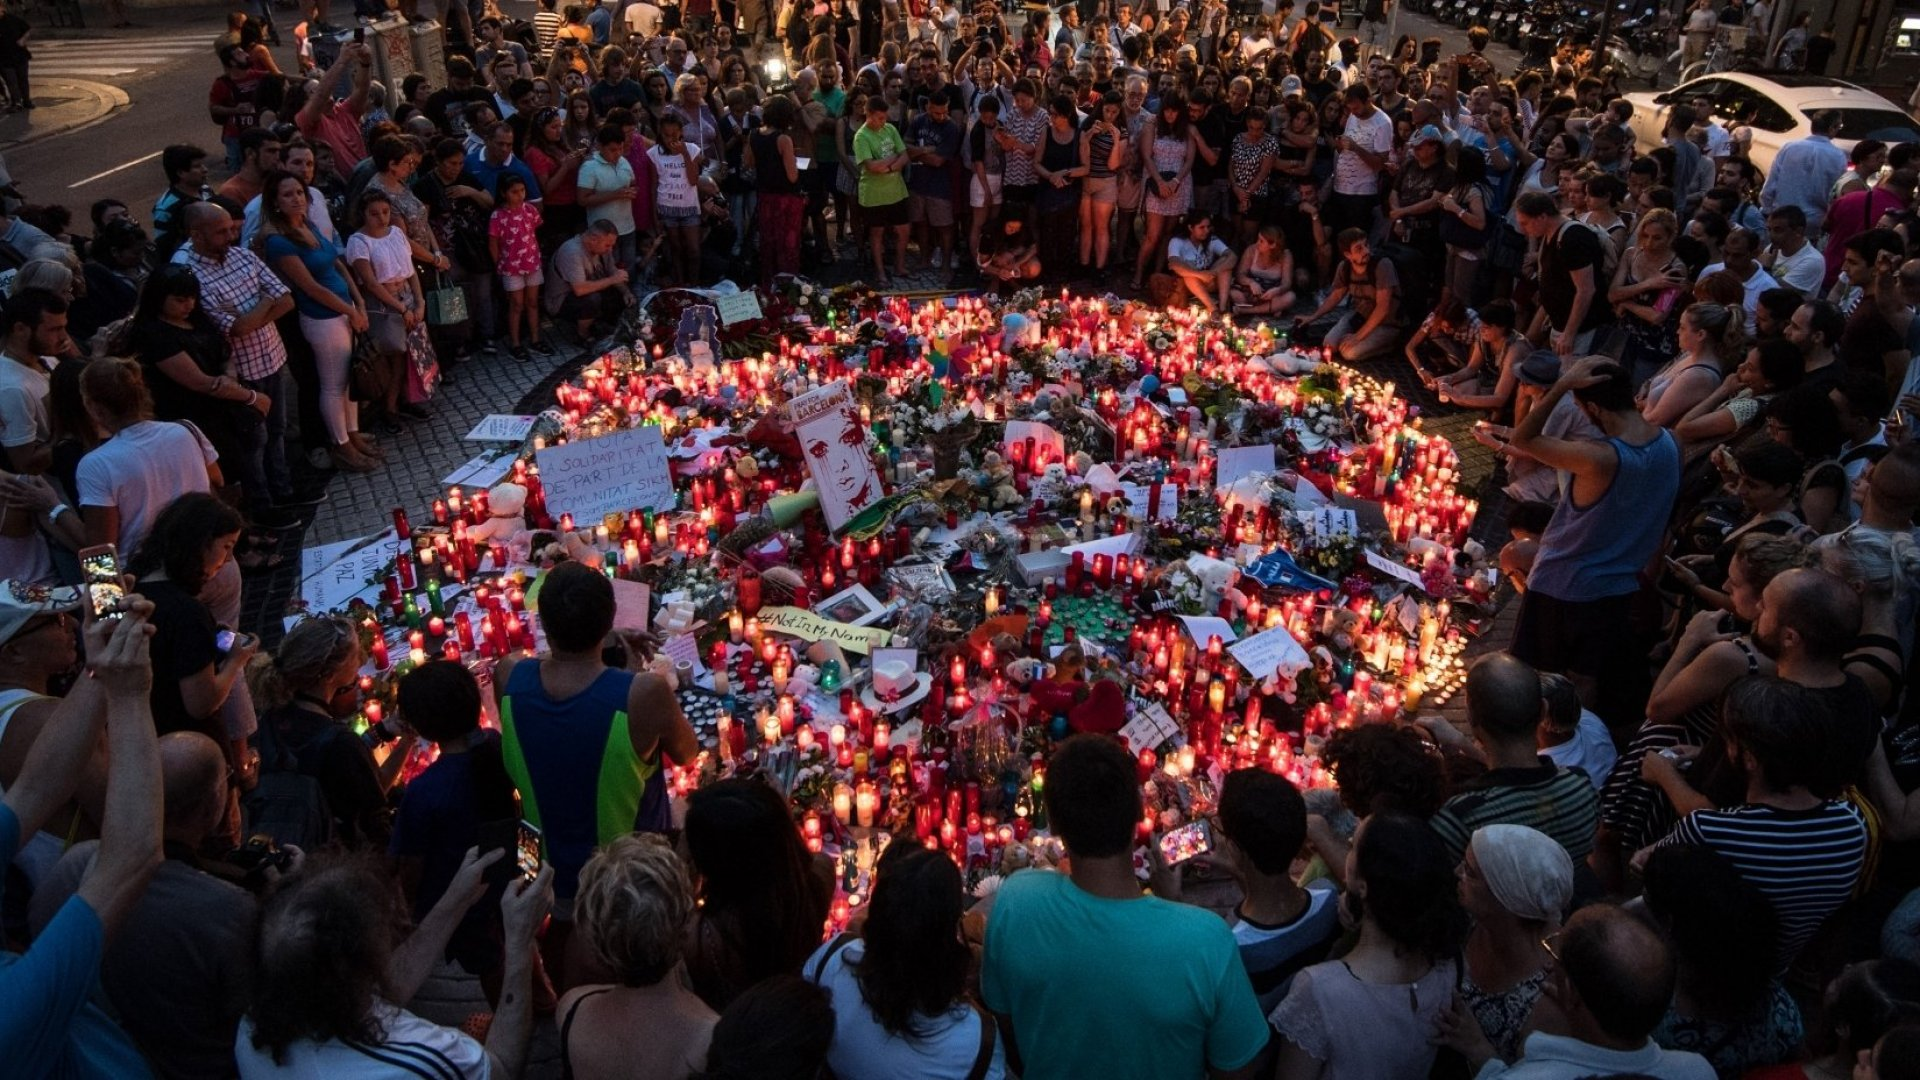 People gather around tributes laid on Las Ramblas near to the scene of a terrorist attack, on August 18, 2017 in Barcelona, Spain.